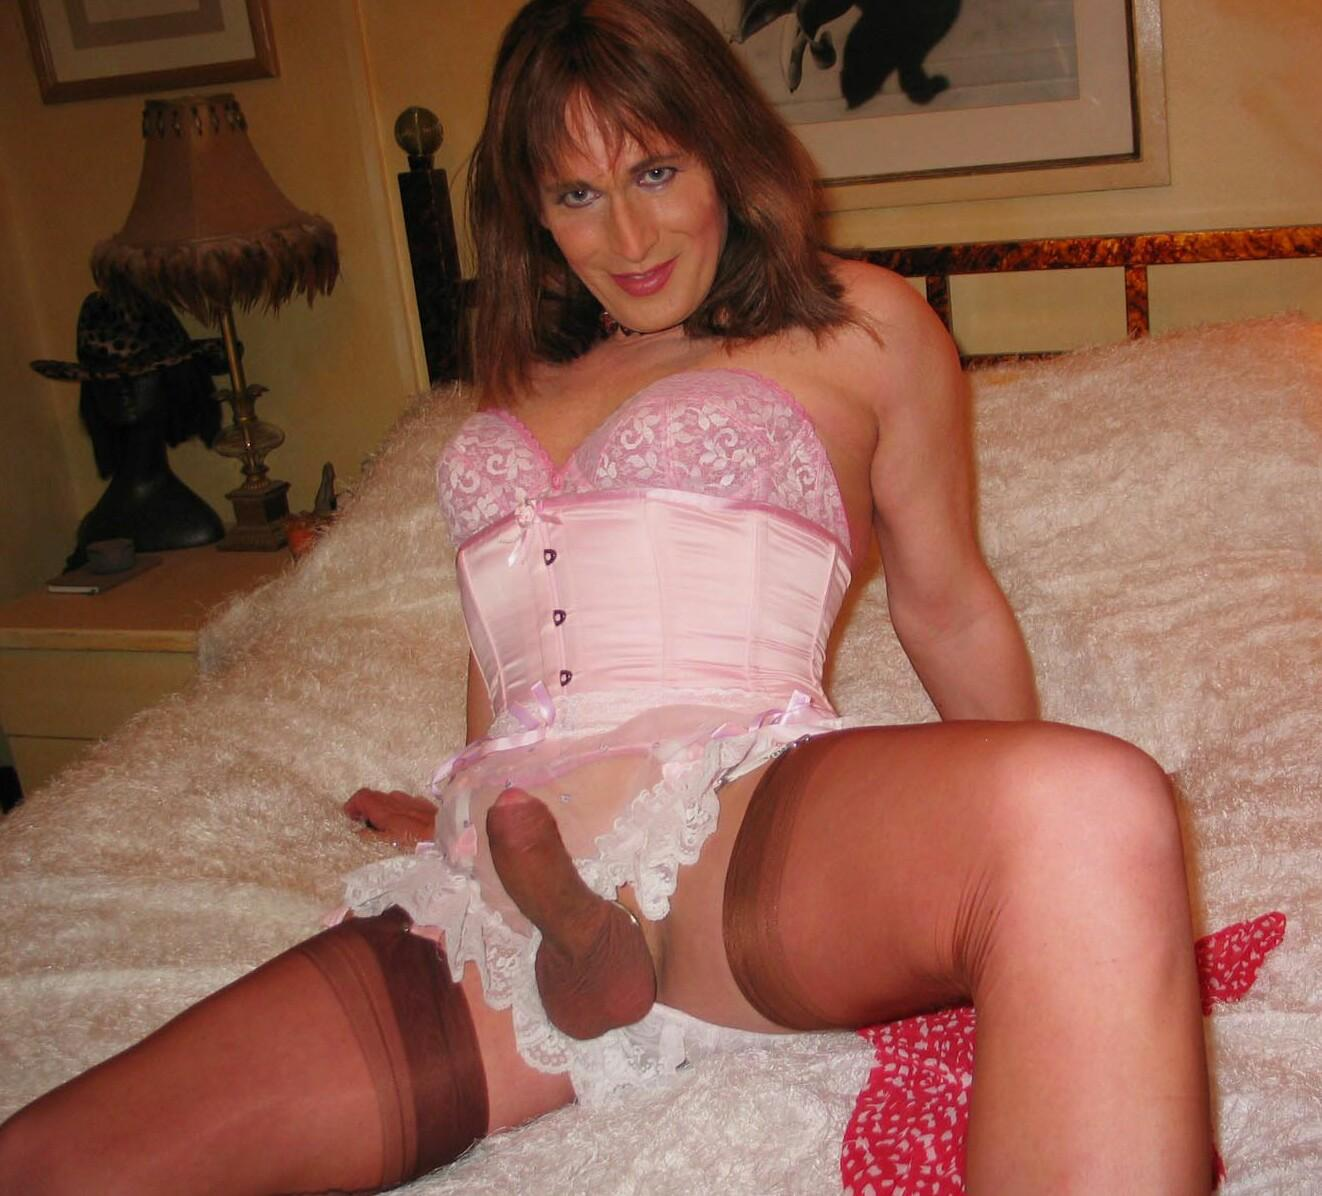 Crossdresser girdle captions apologise